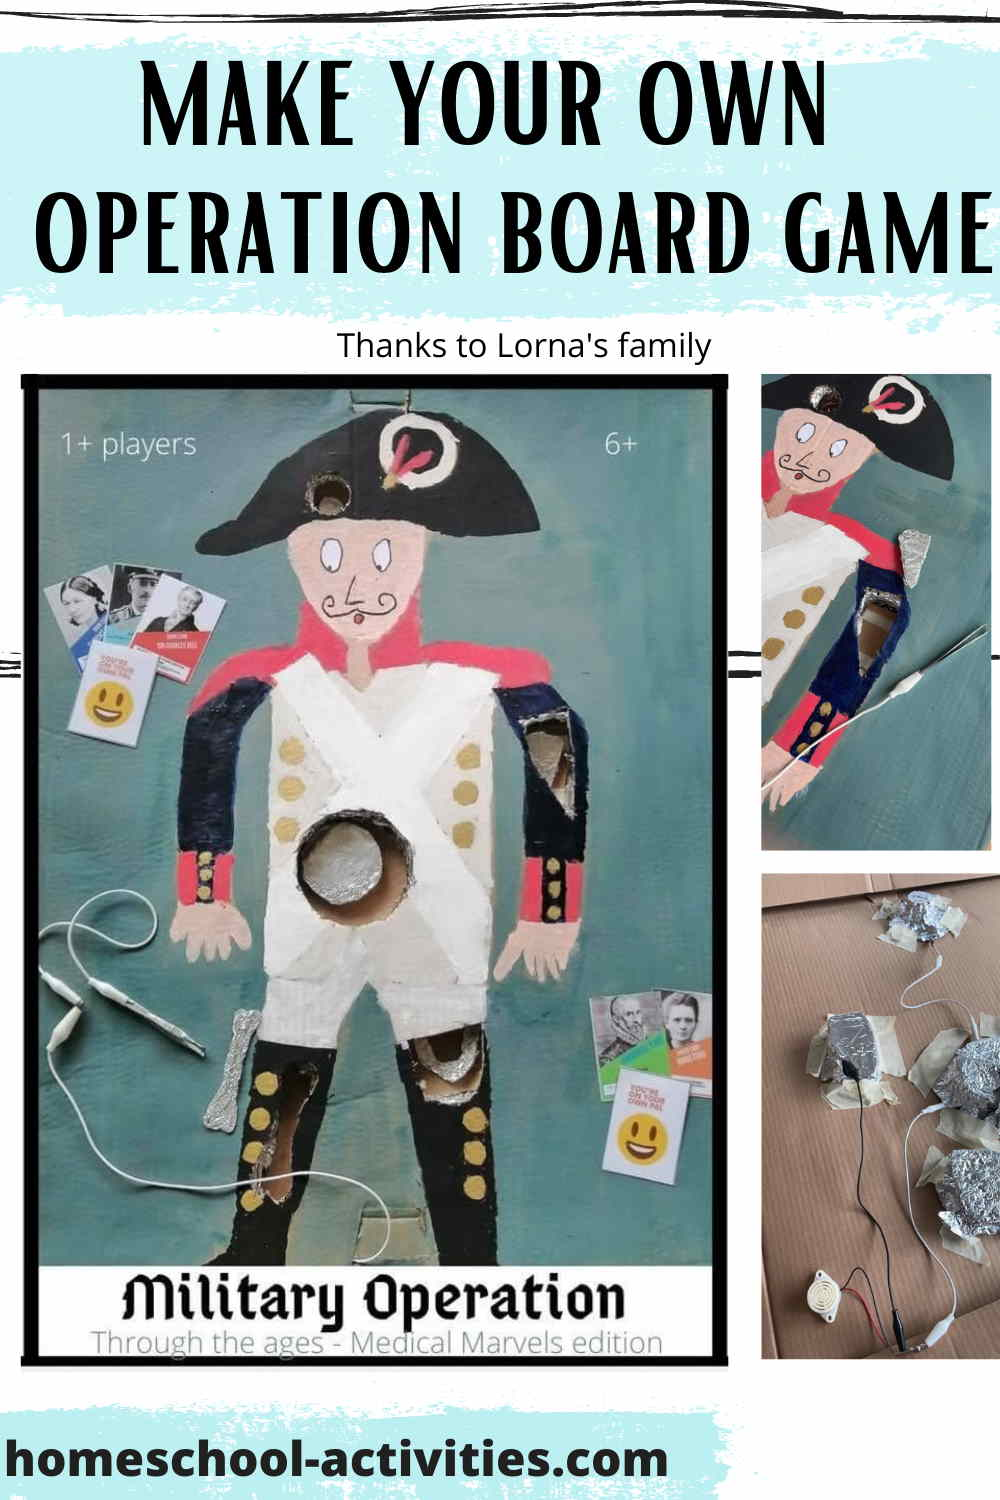 Make your own Operation board game